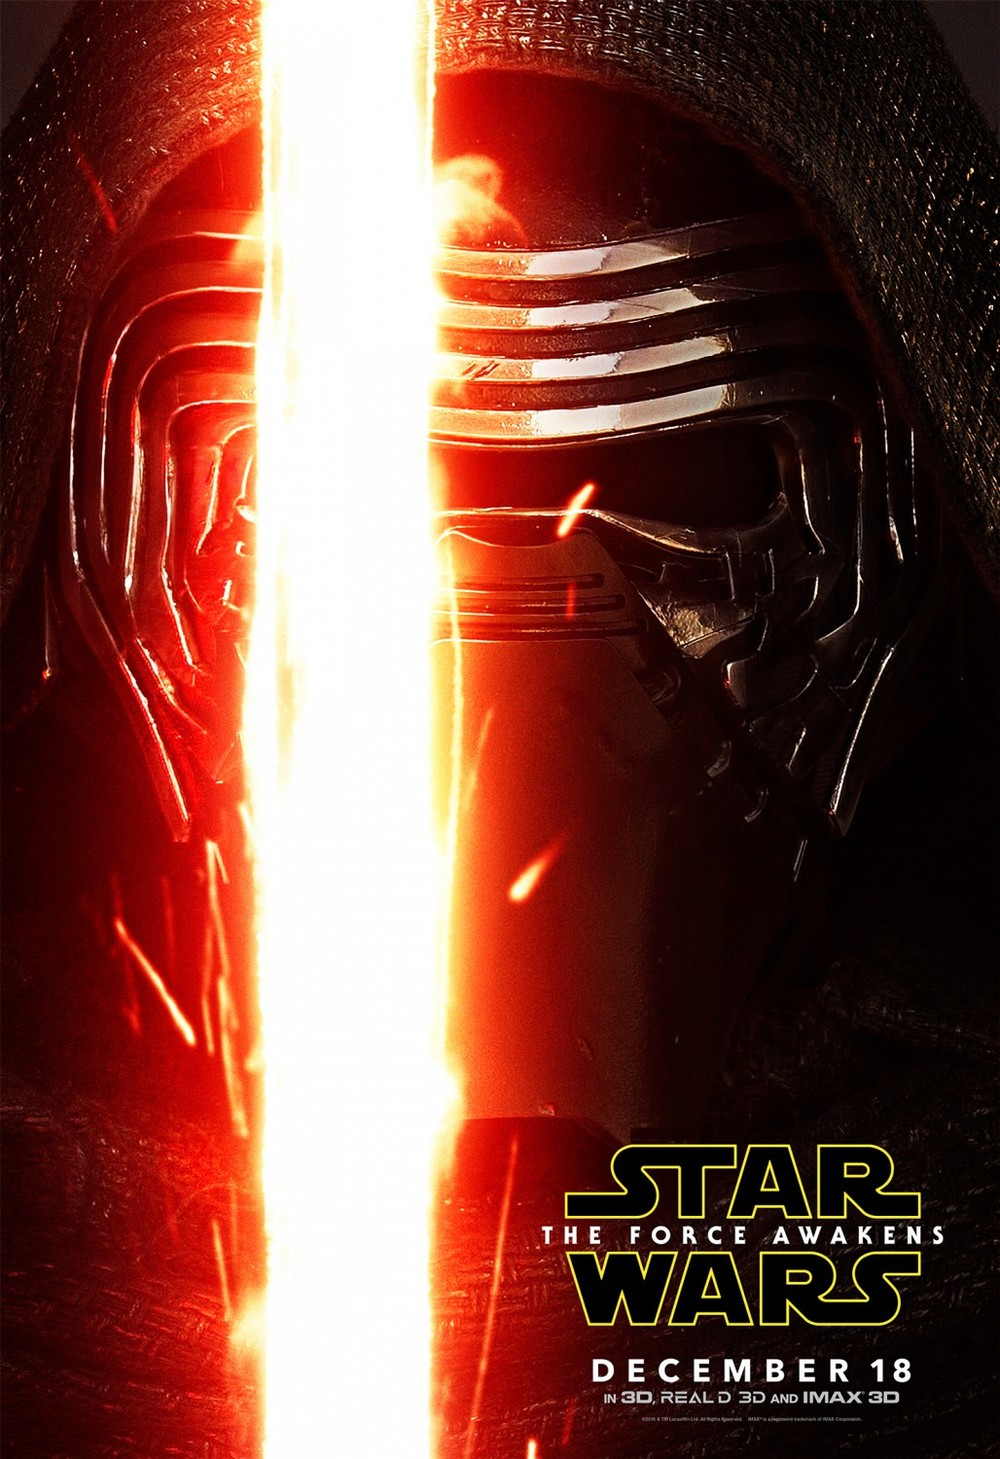 star_wars_episode_vii__the_force_awakens_ver7_xlg.jpg